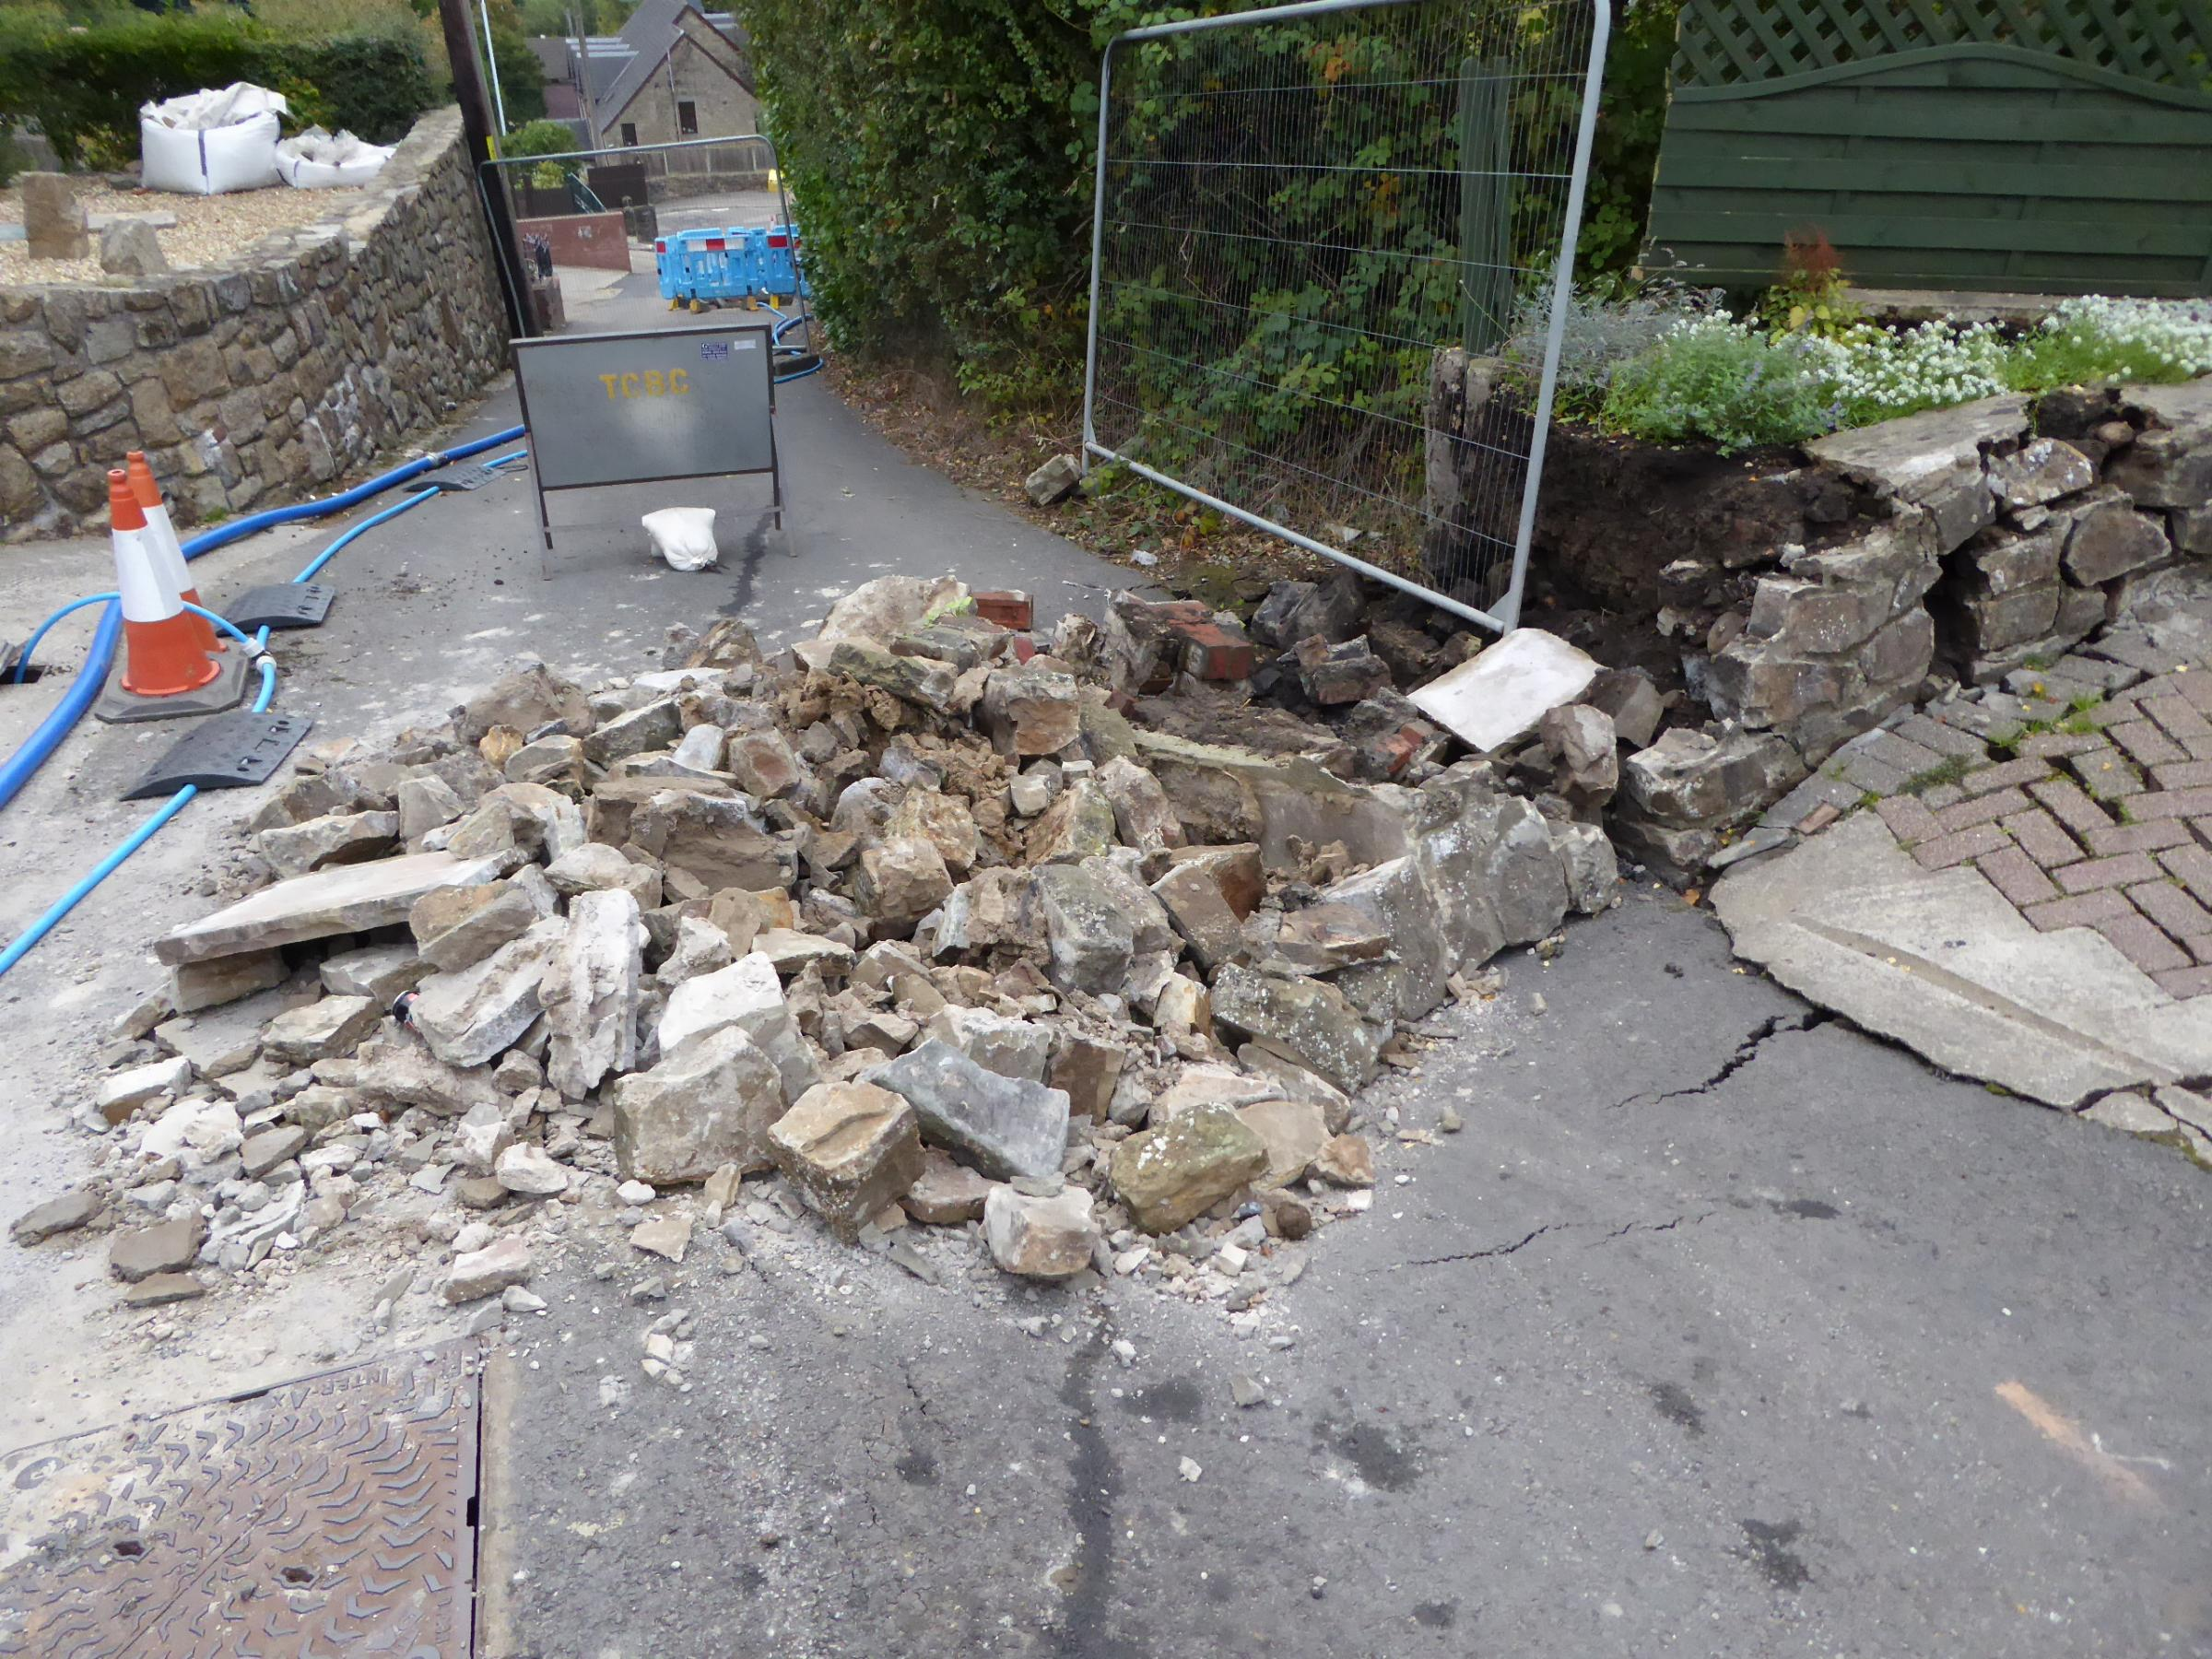 The sinkhole which appeared in Vicarage Lane, Abersychan